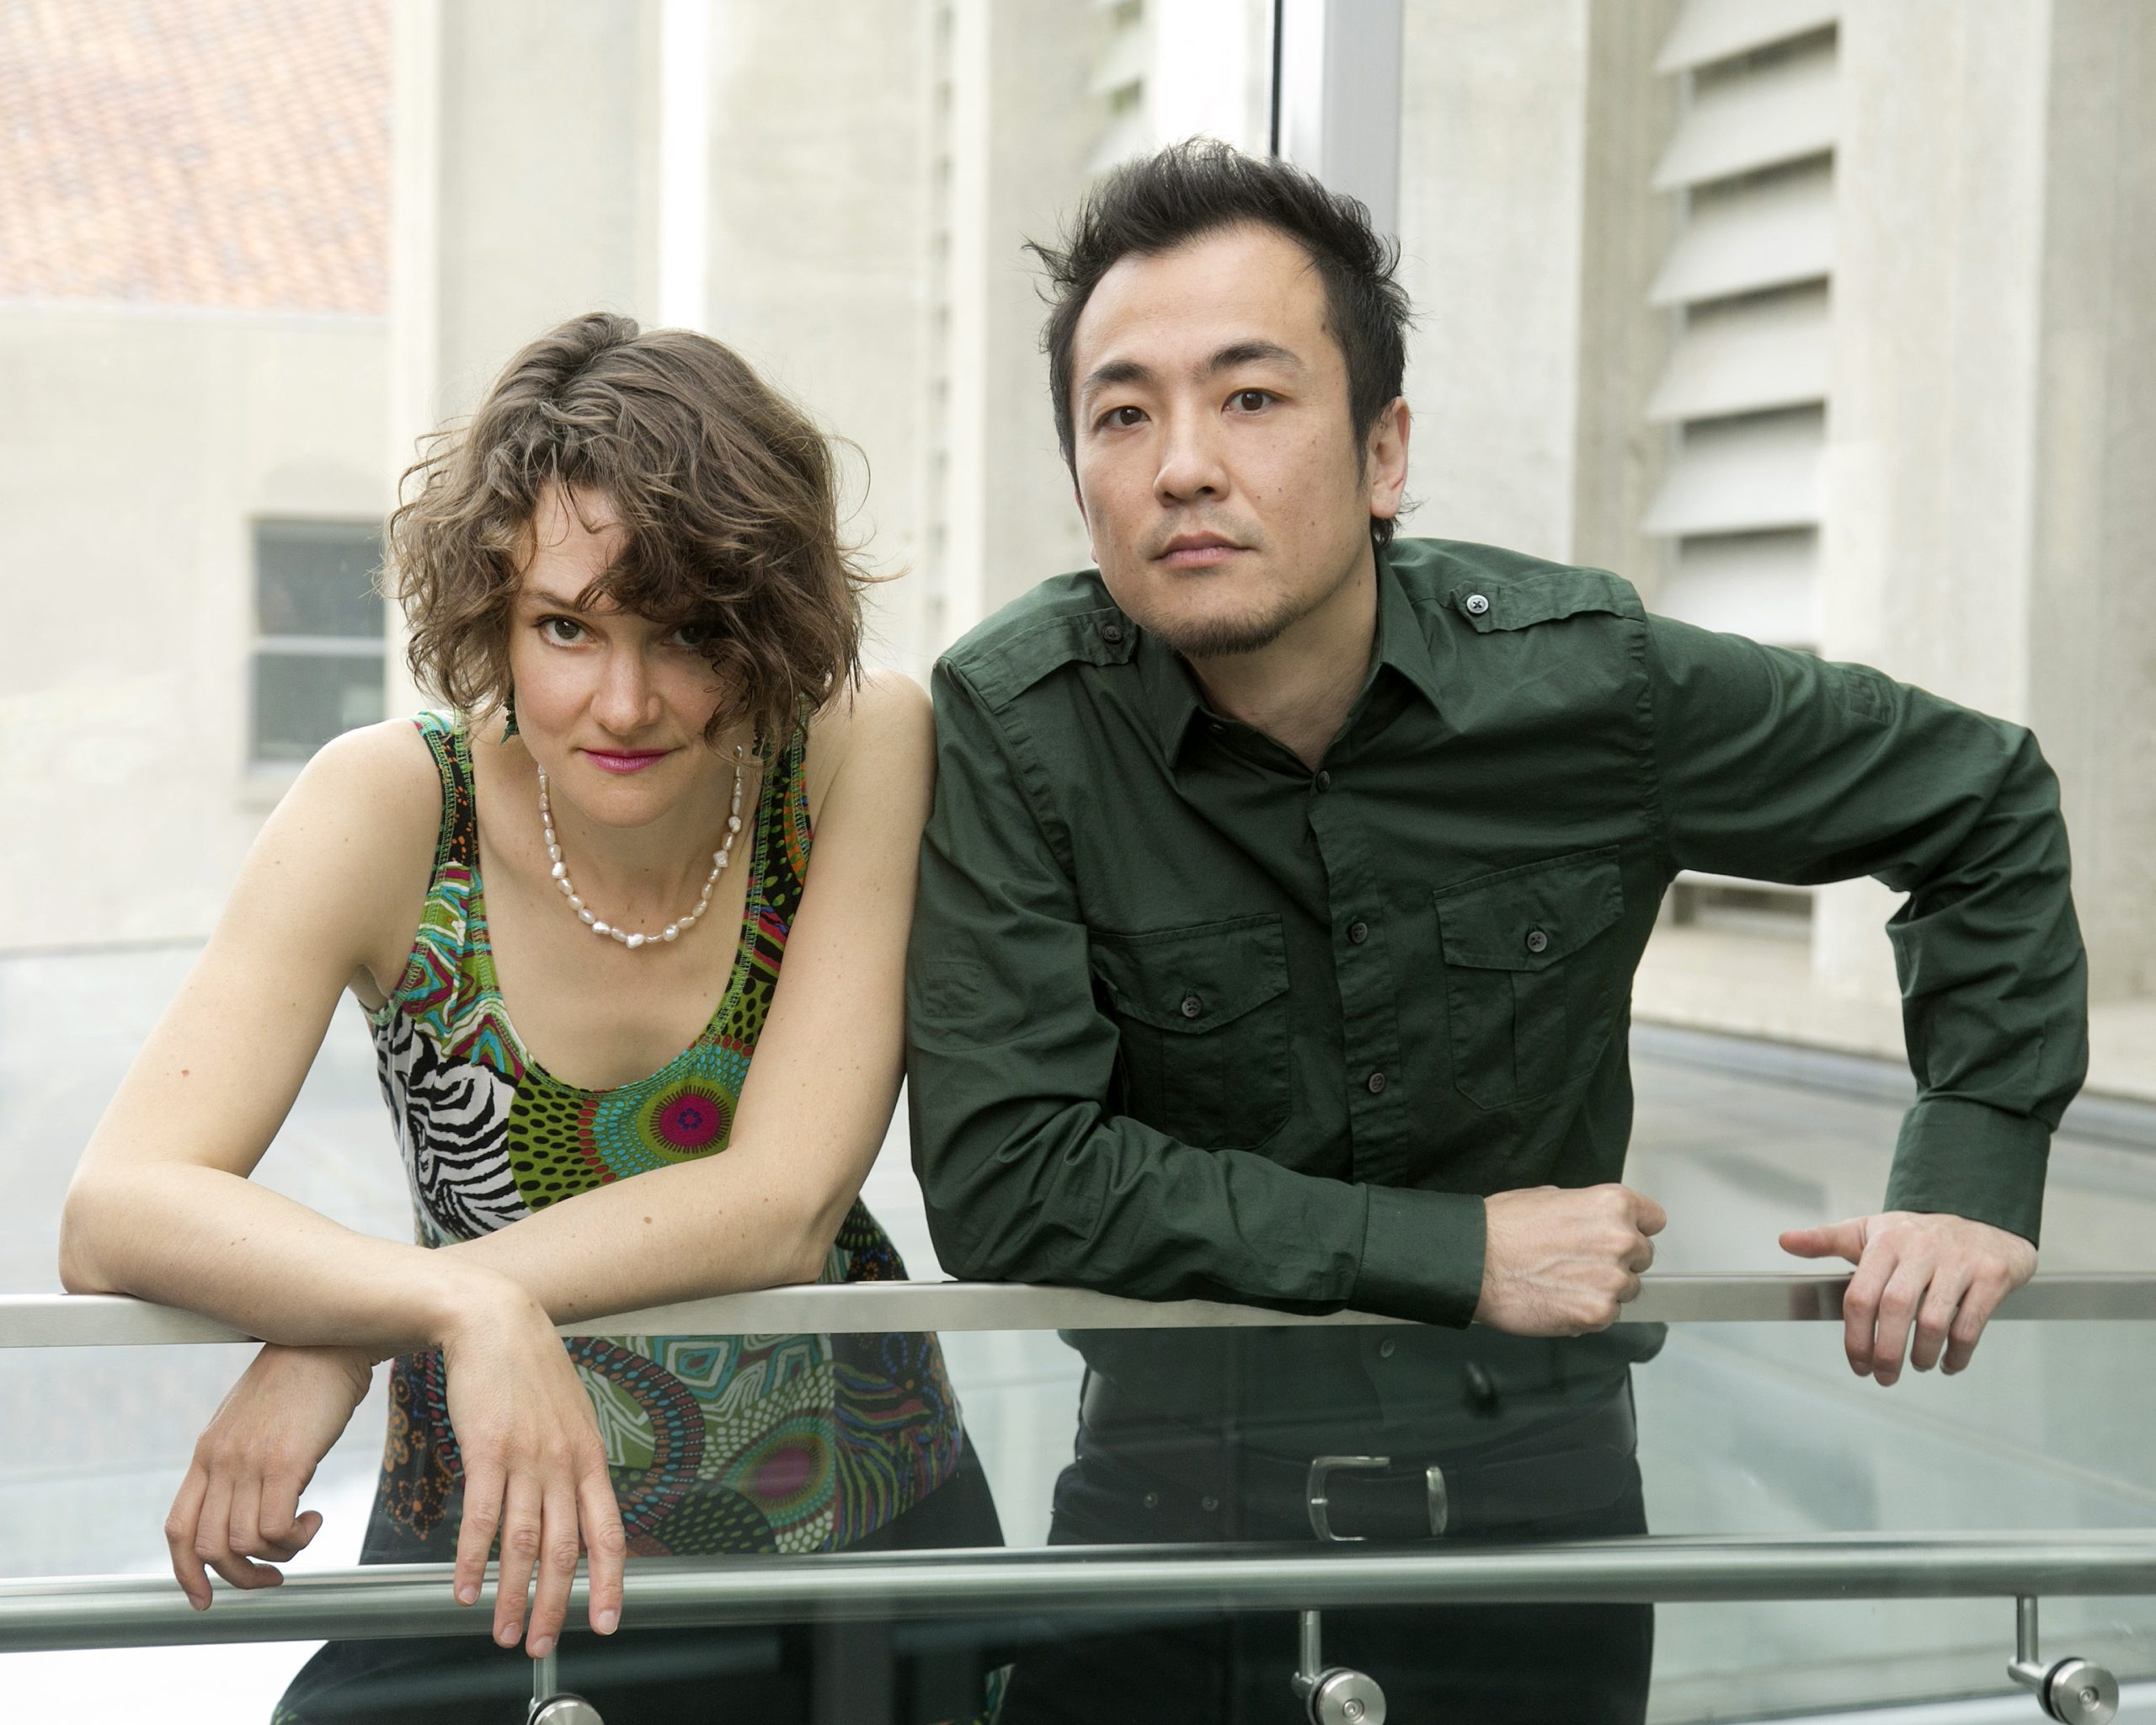 Zofo pianists Eva-Maria Zimmermann and Keisuke Nakagoshi play a beautiful disc of Terry Riley's work .